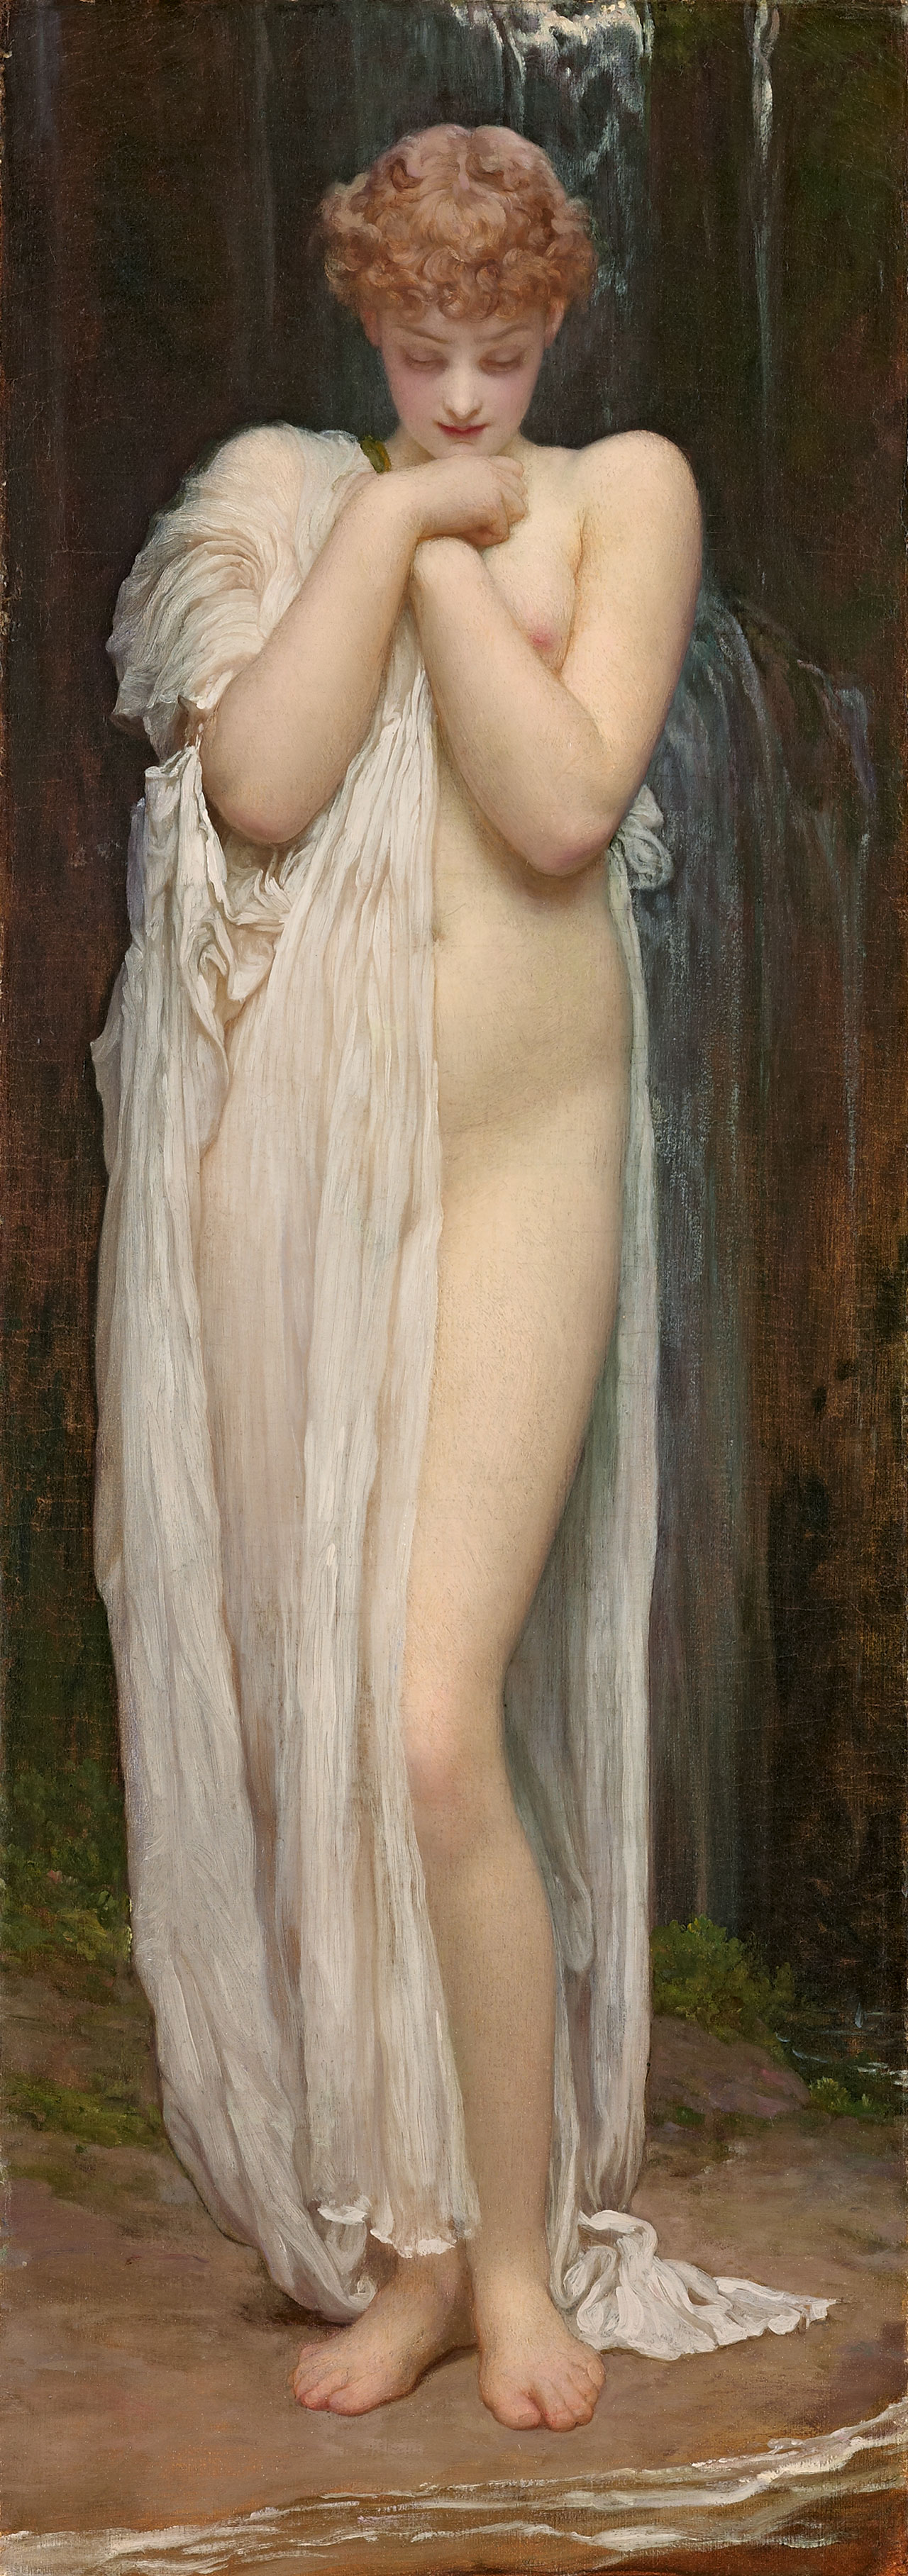 """Frederic Lord Leighton, """"Crenaia, the Nymph of the Dargle"""" (1880)"""